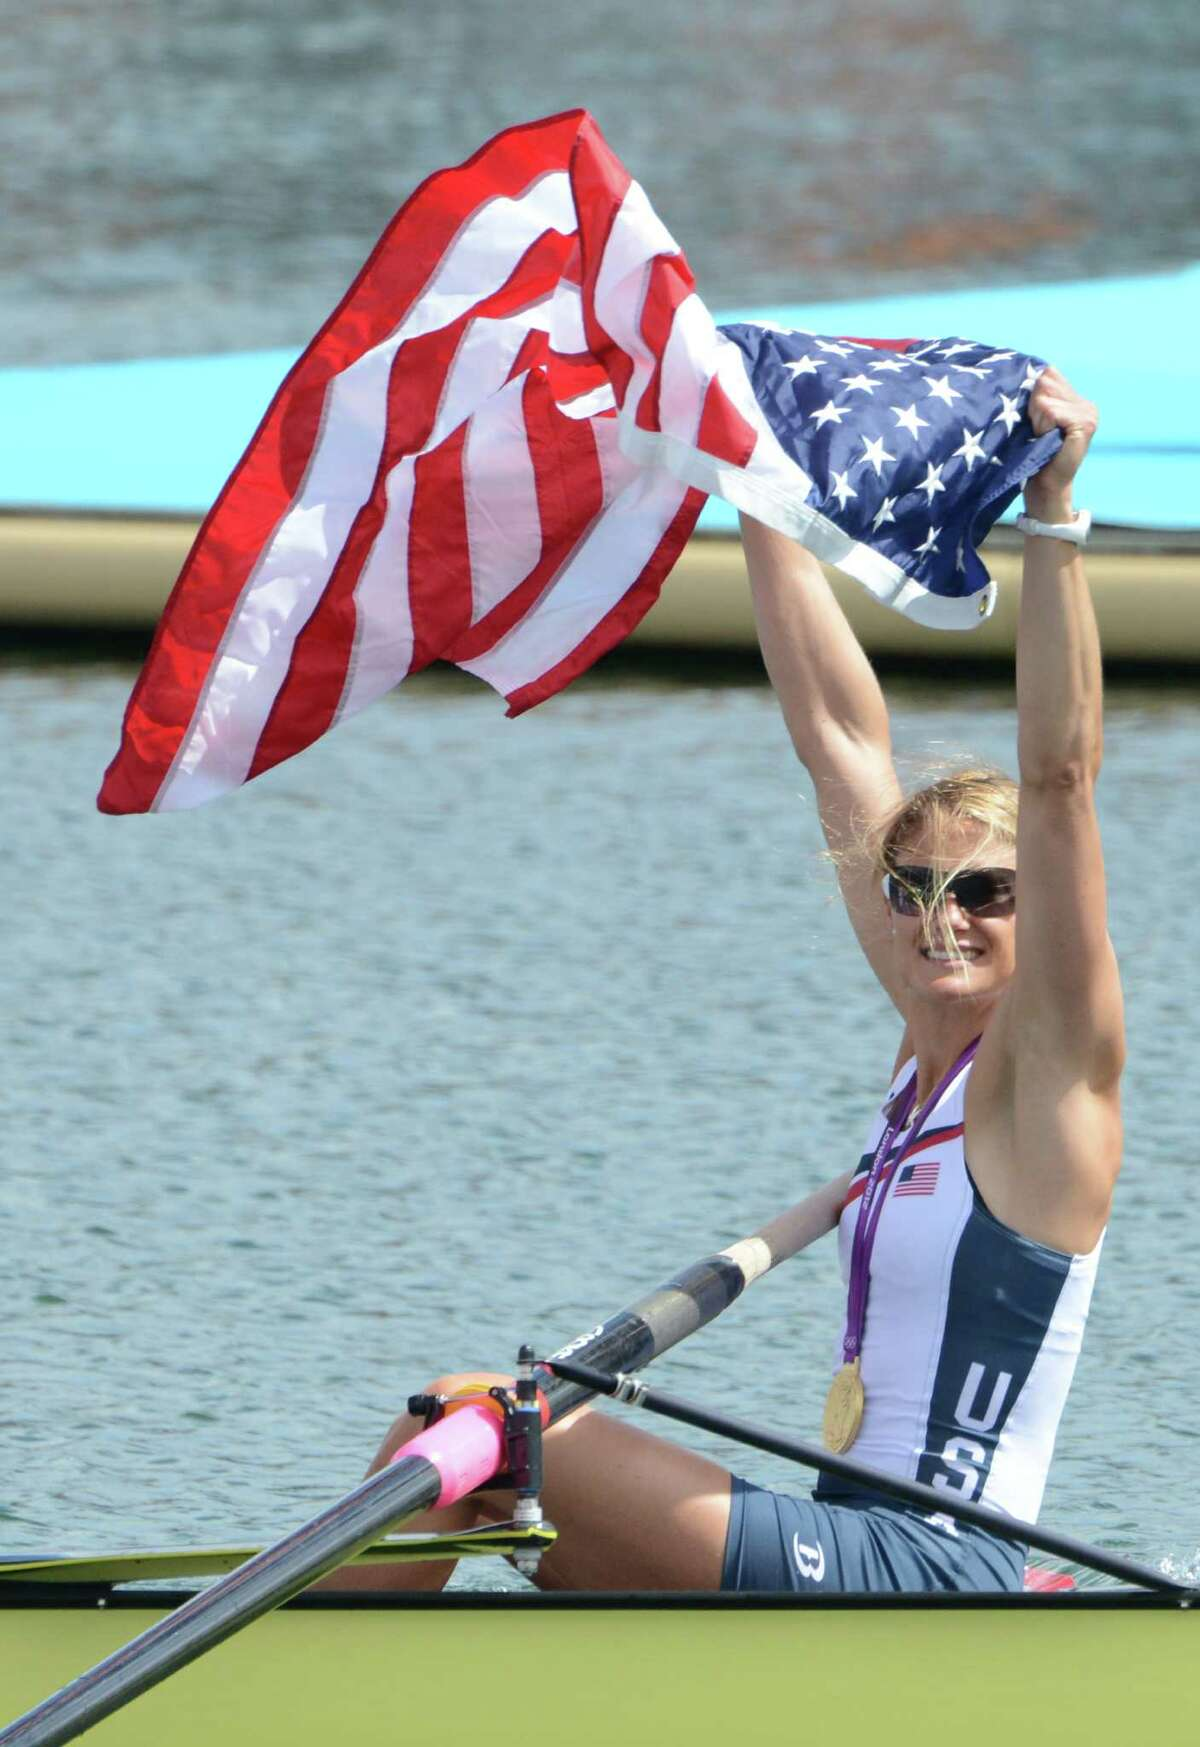 A member of the US team waves her national flag as she celebrates after receiving their gold medals won in the women's eight final of the rowing event during the London 2012 Olympic Games, at Eton Dorney Rowing Centre in Eton, west of London, on August 2, 2012. AFP PHOTO / DAMIEN MEYER